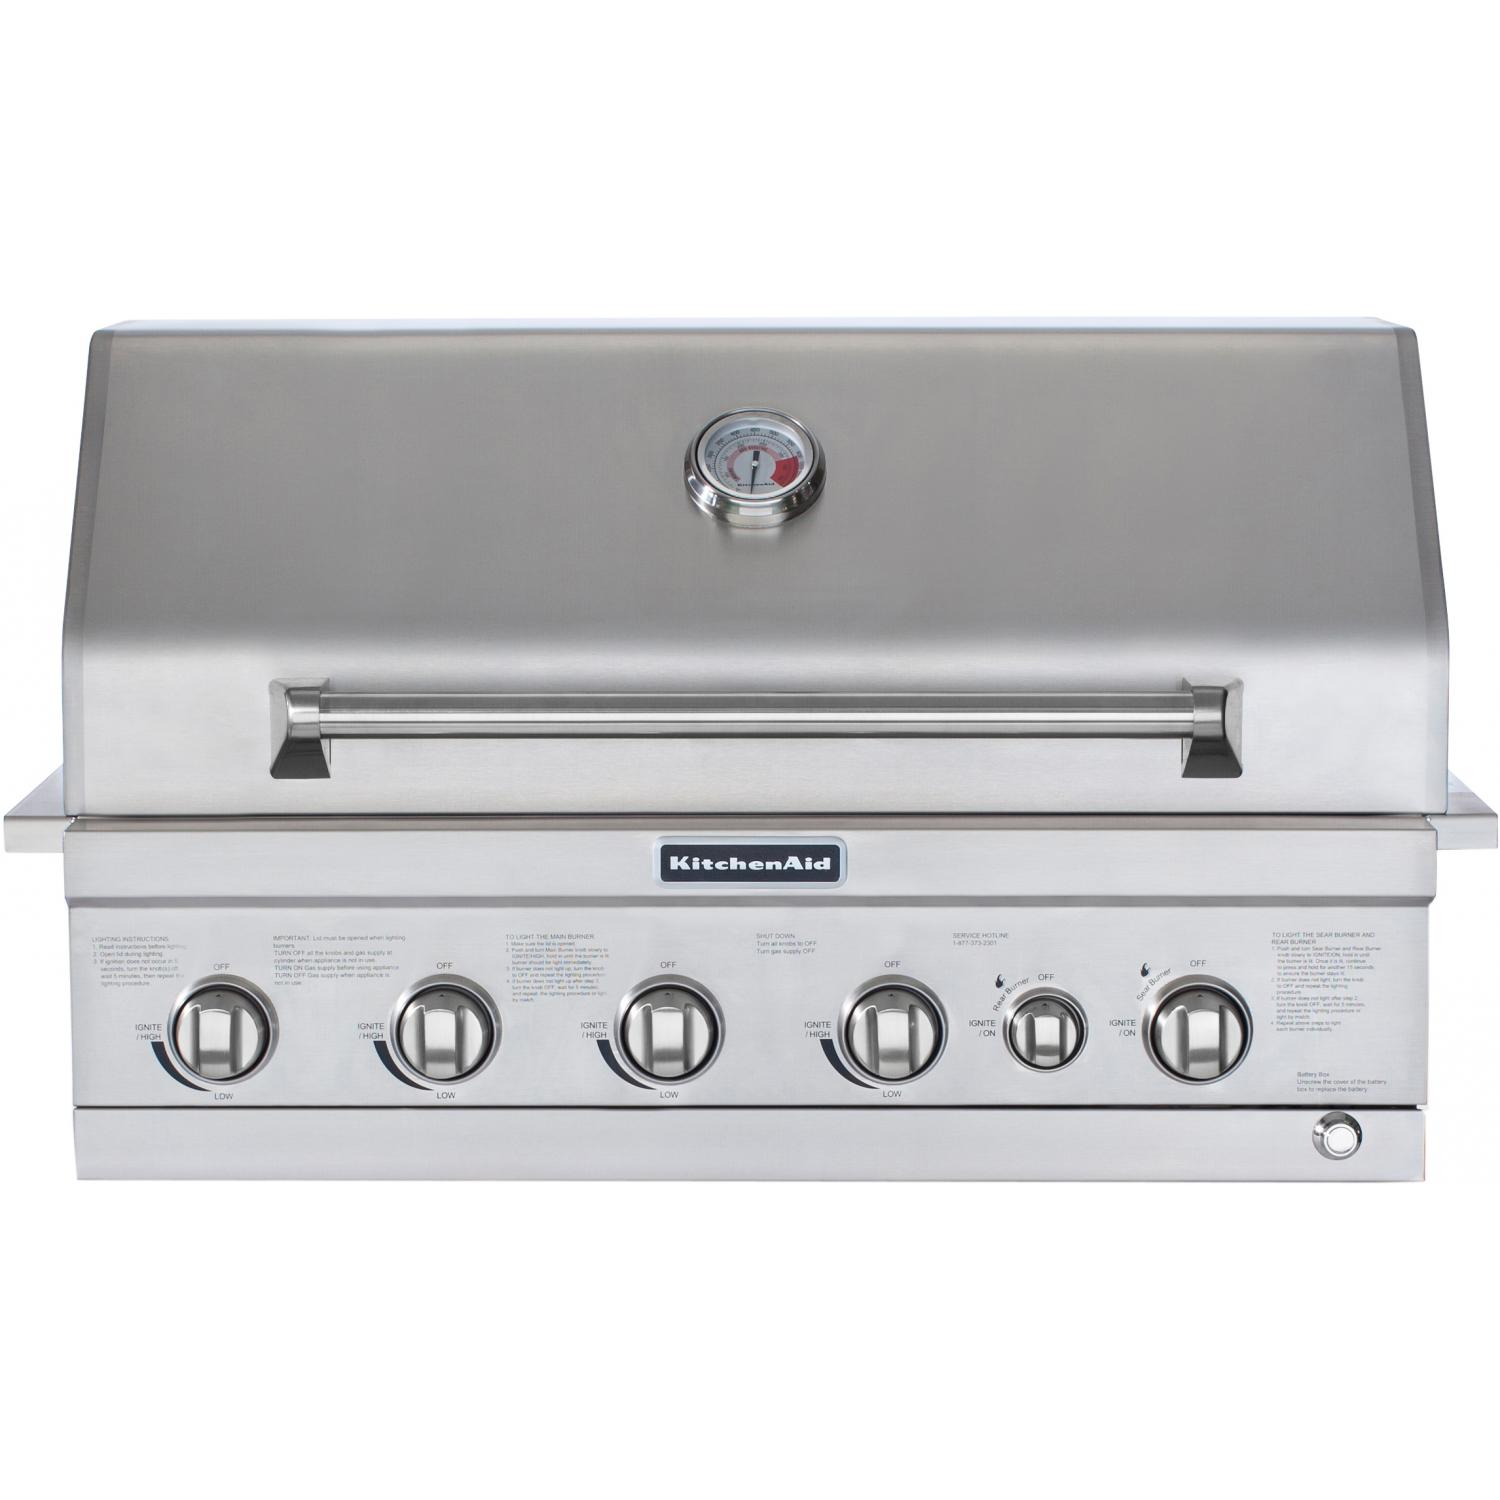 Kitchen Aid Bbq Grill: Kitchenaid 36-inch Propane Gas Built-in Grill With Searing